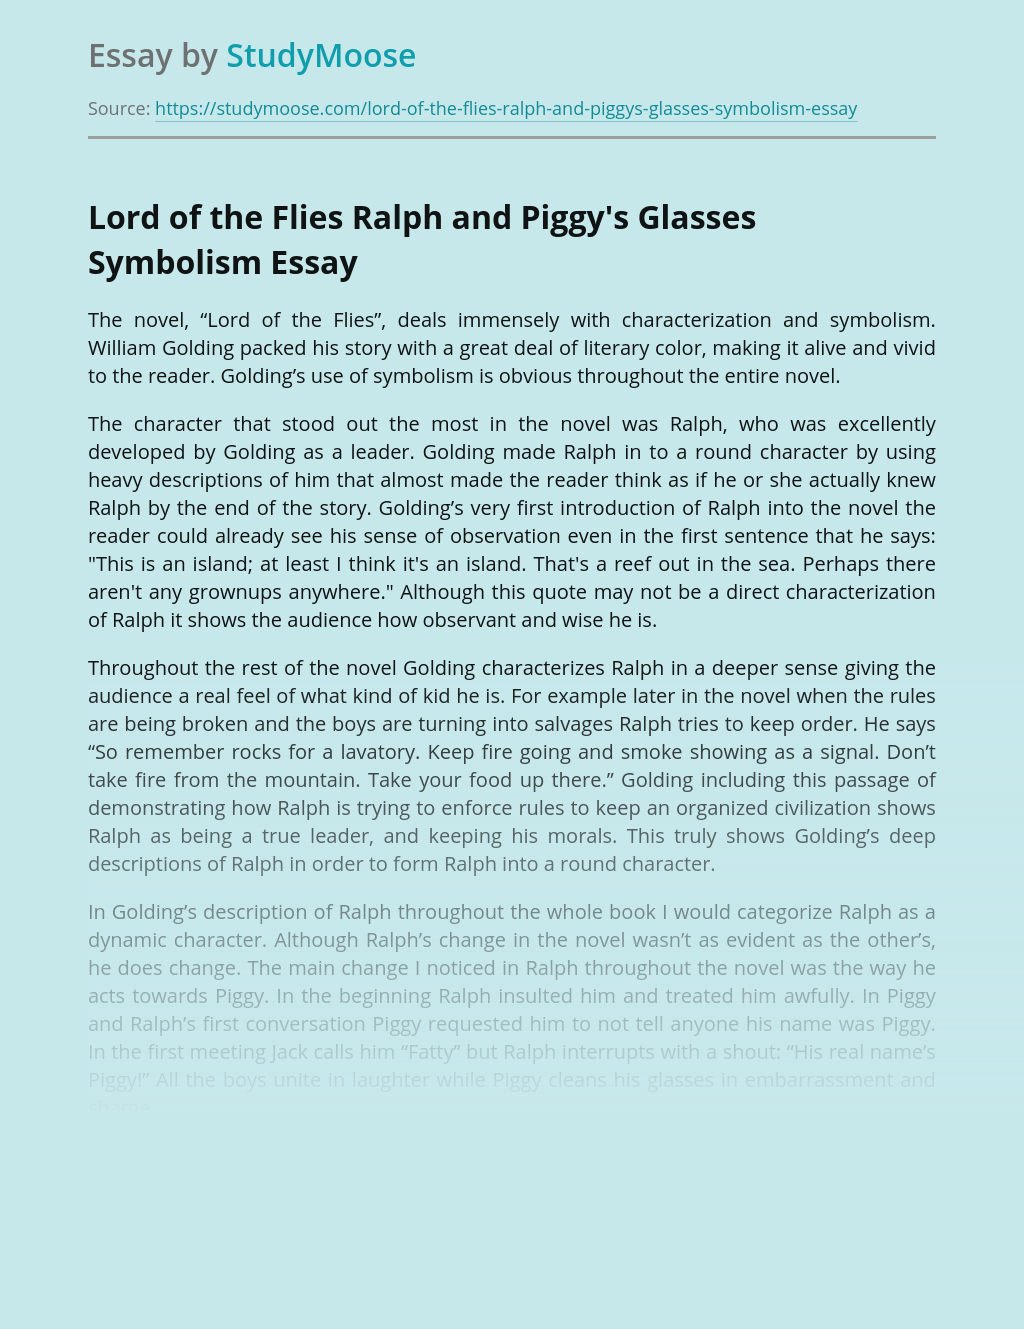 Lord of the Flies Ralph and Piggy's Glasses Symbolism